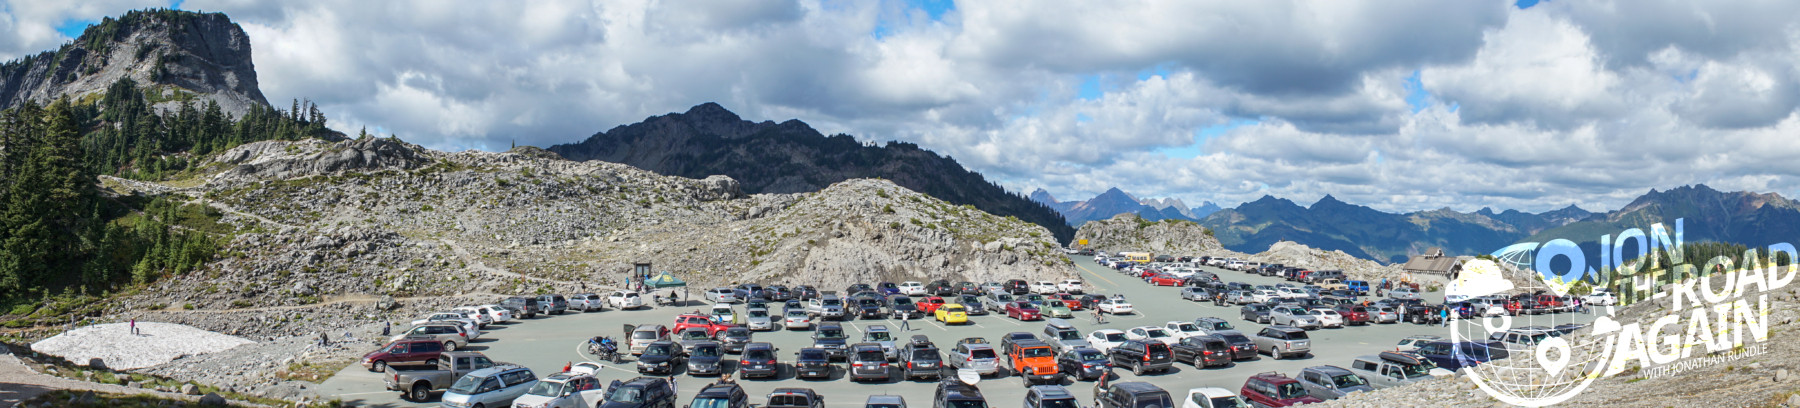 Artist Point Parking lot